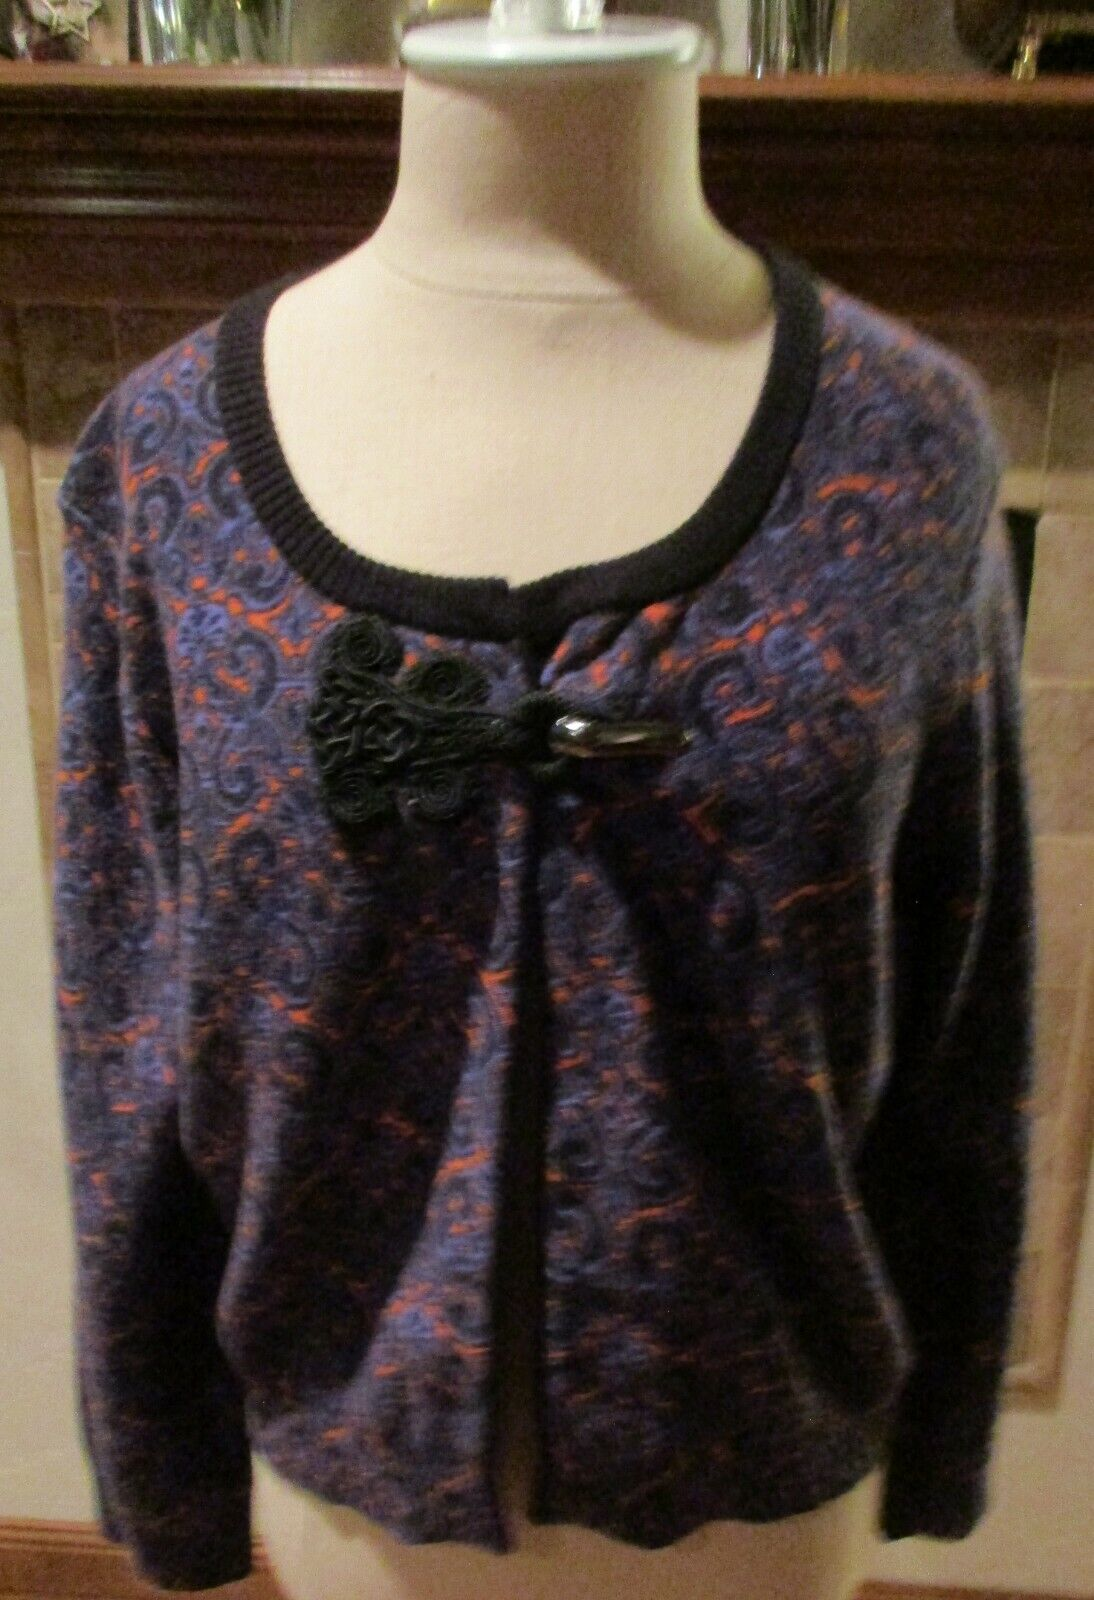 New Anthropologie Women Sweater Tracy Reese Printed Cardigan Size M